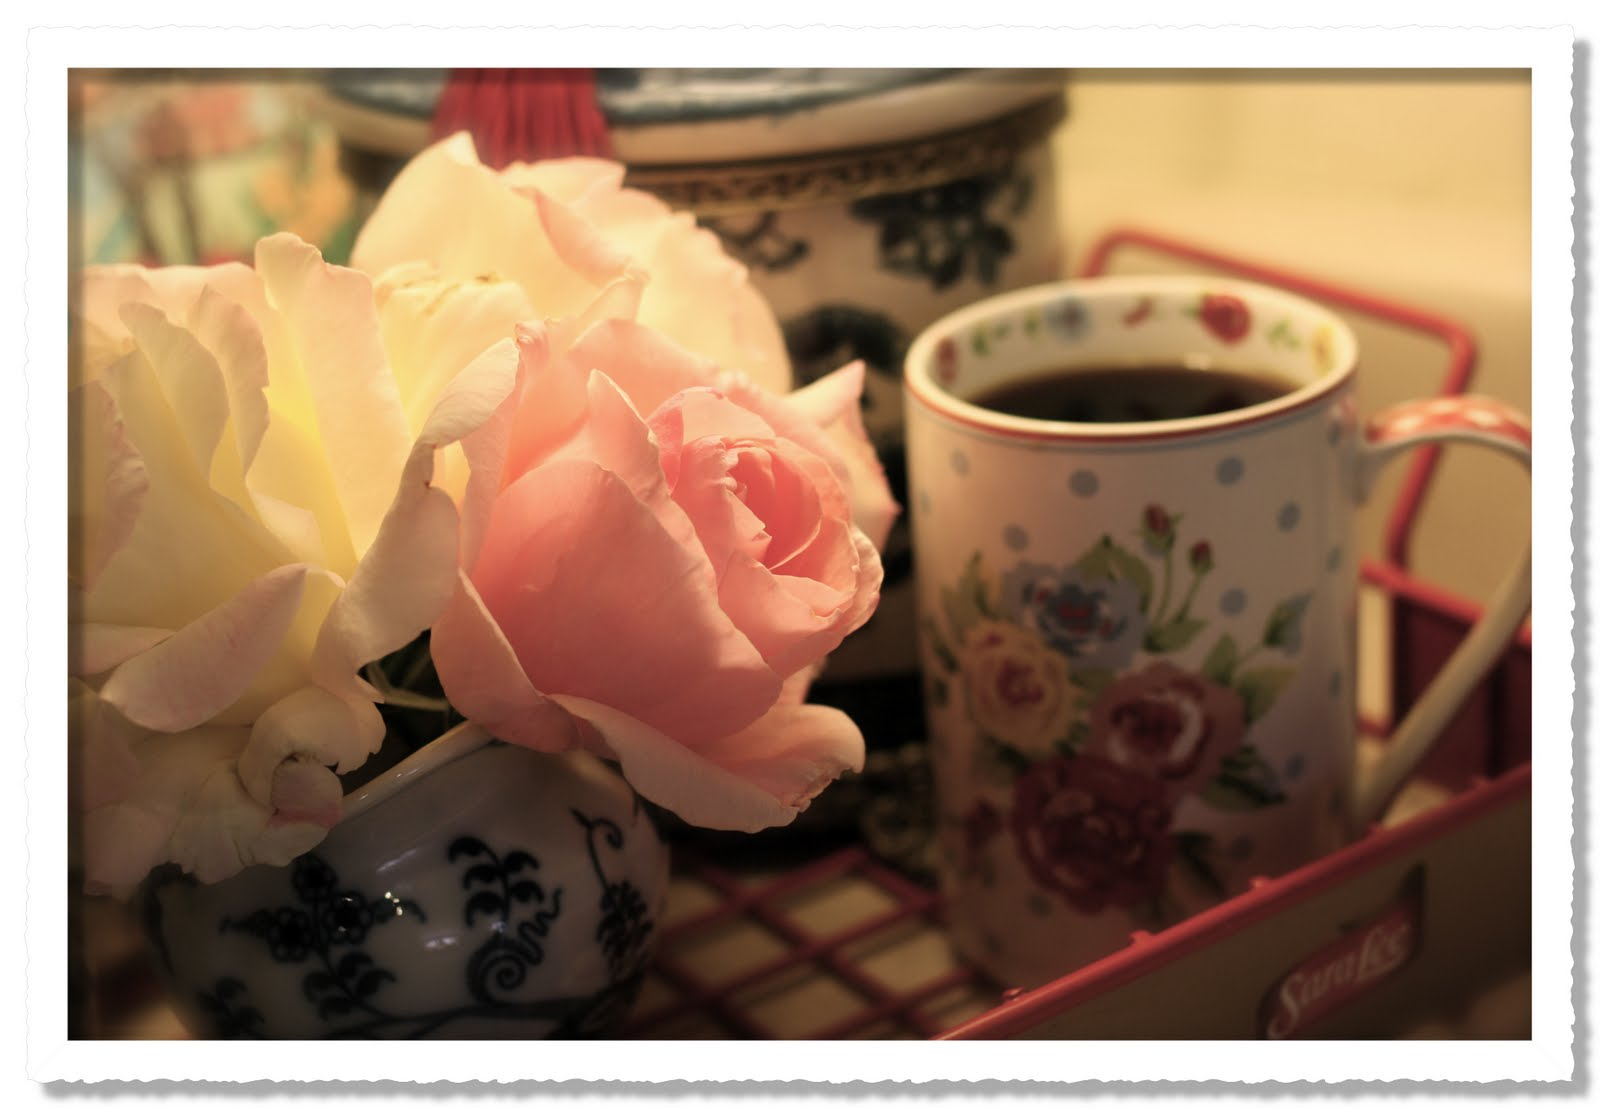 Rose Vignettes Good Morning Coffees Ready